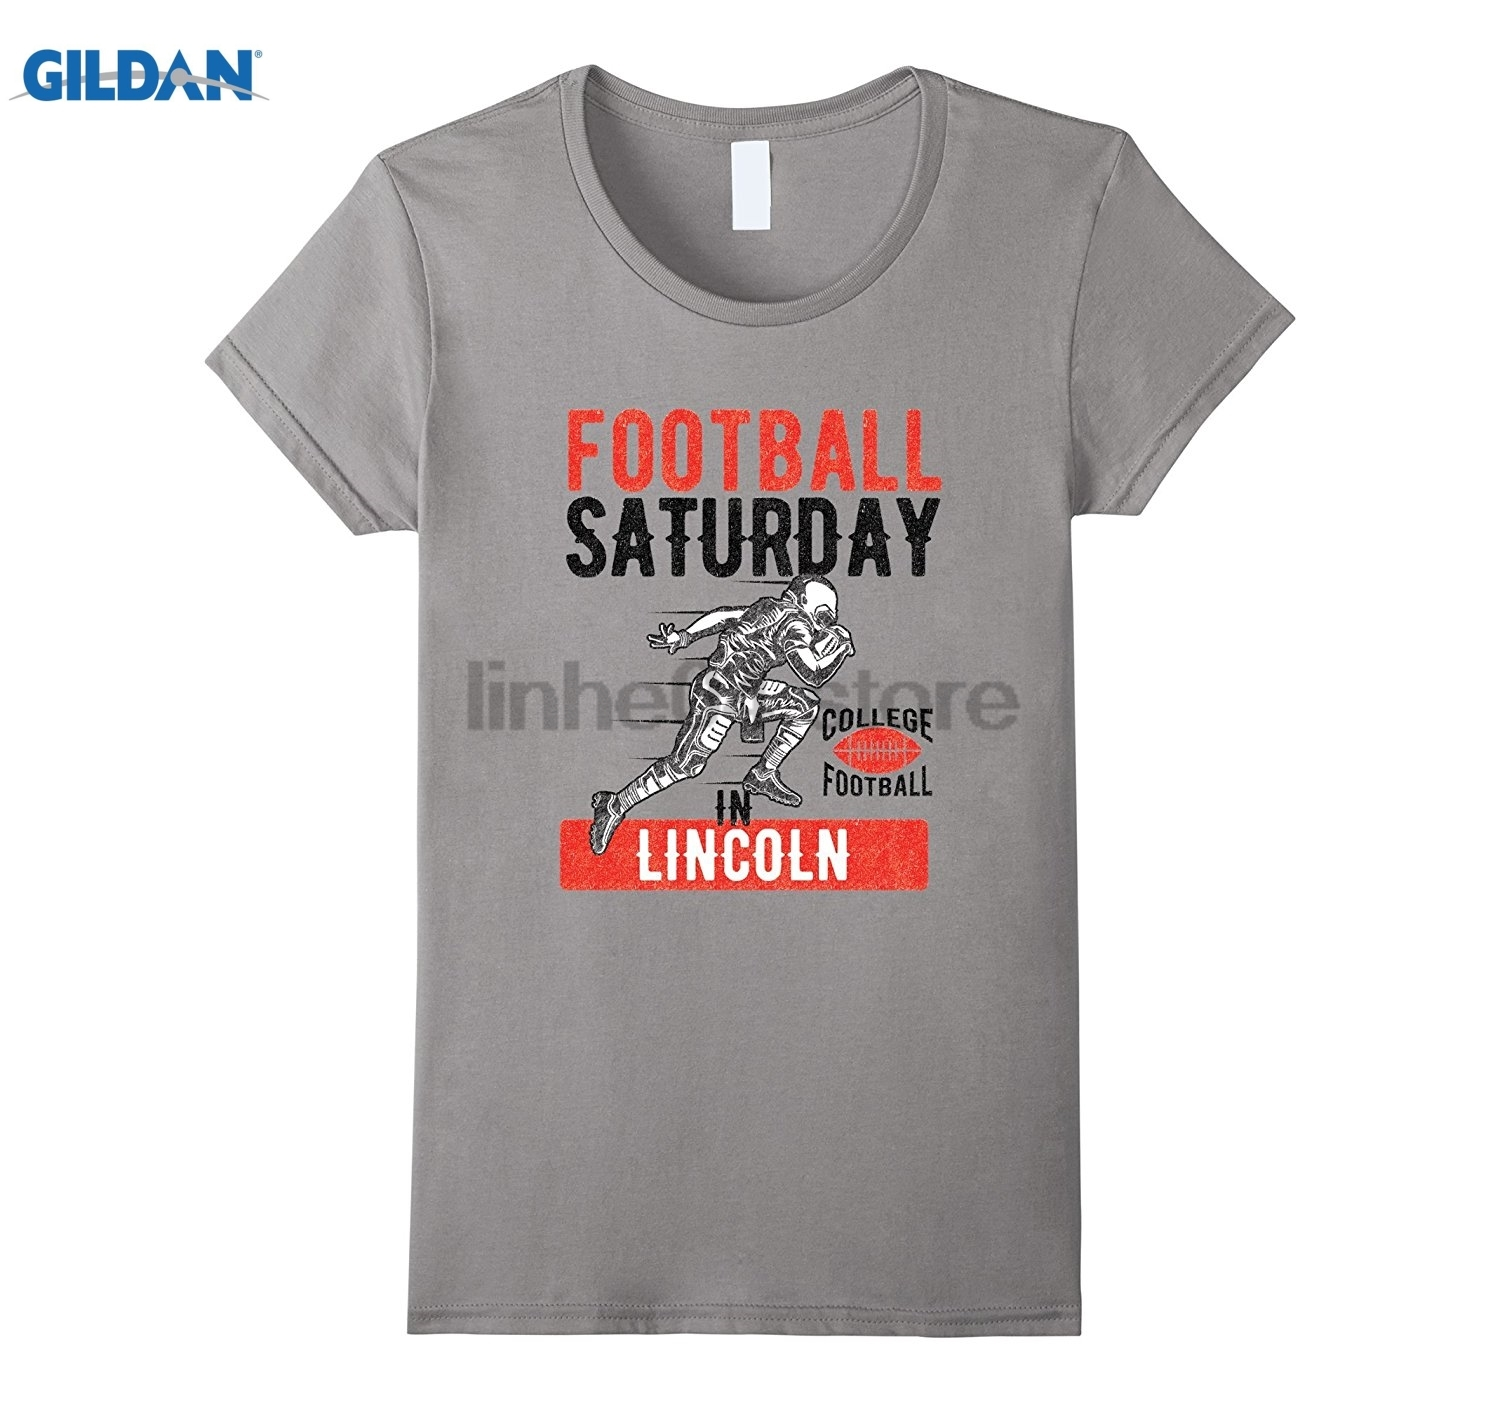 GILDAN Saturday in Lincoln NE Game Day Tshirt Hot Womens T-shirt ...